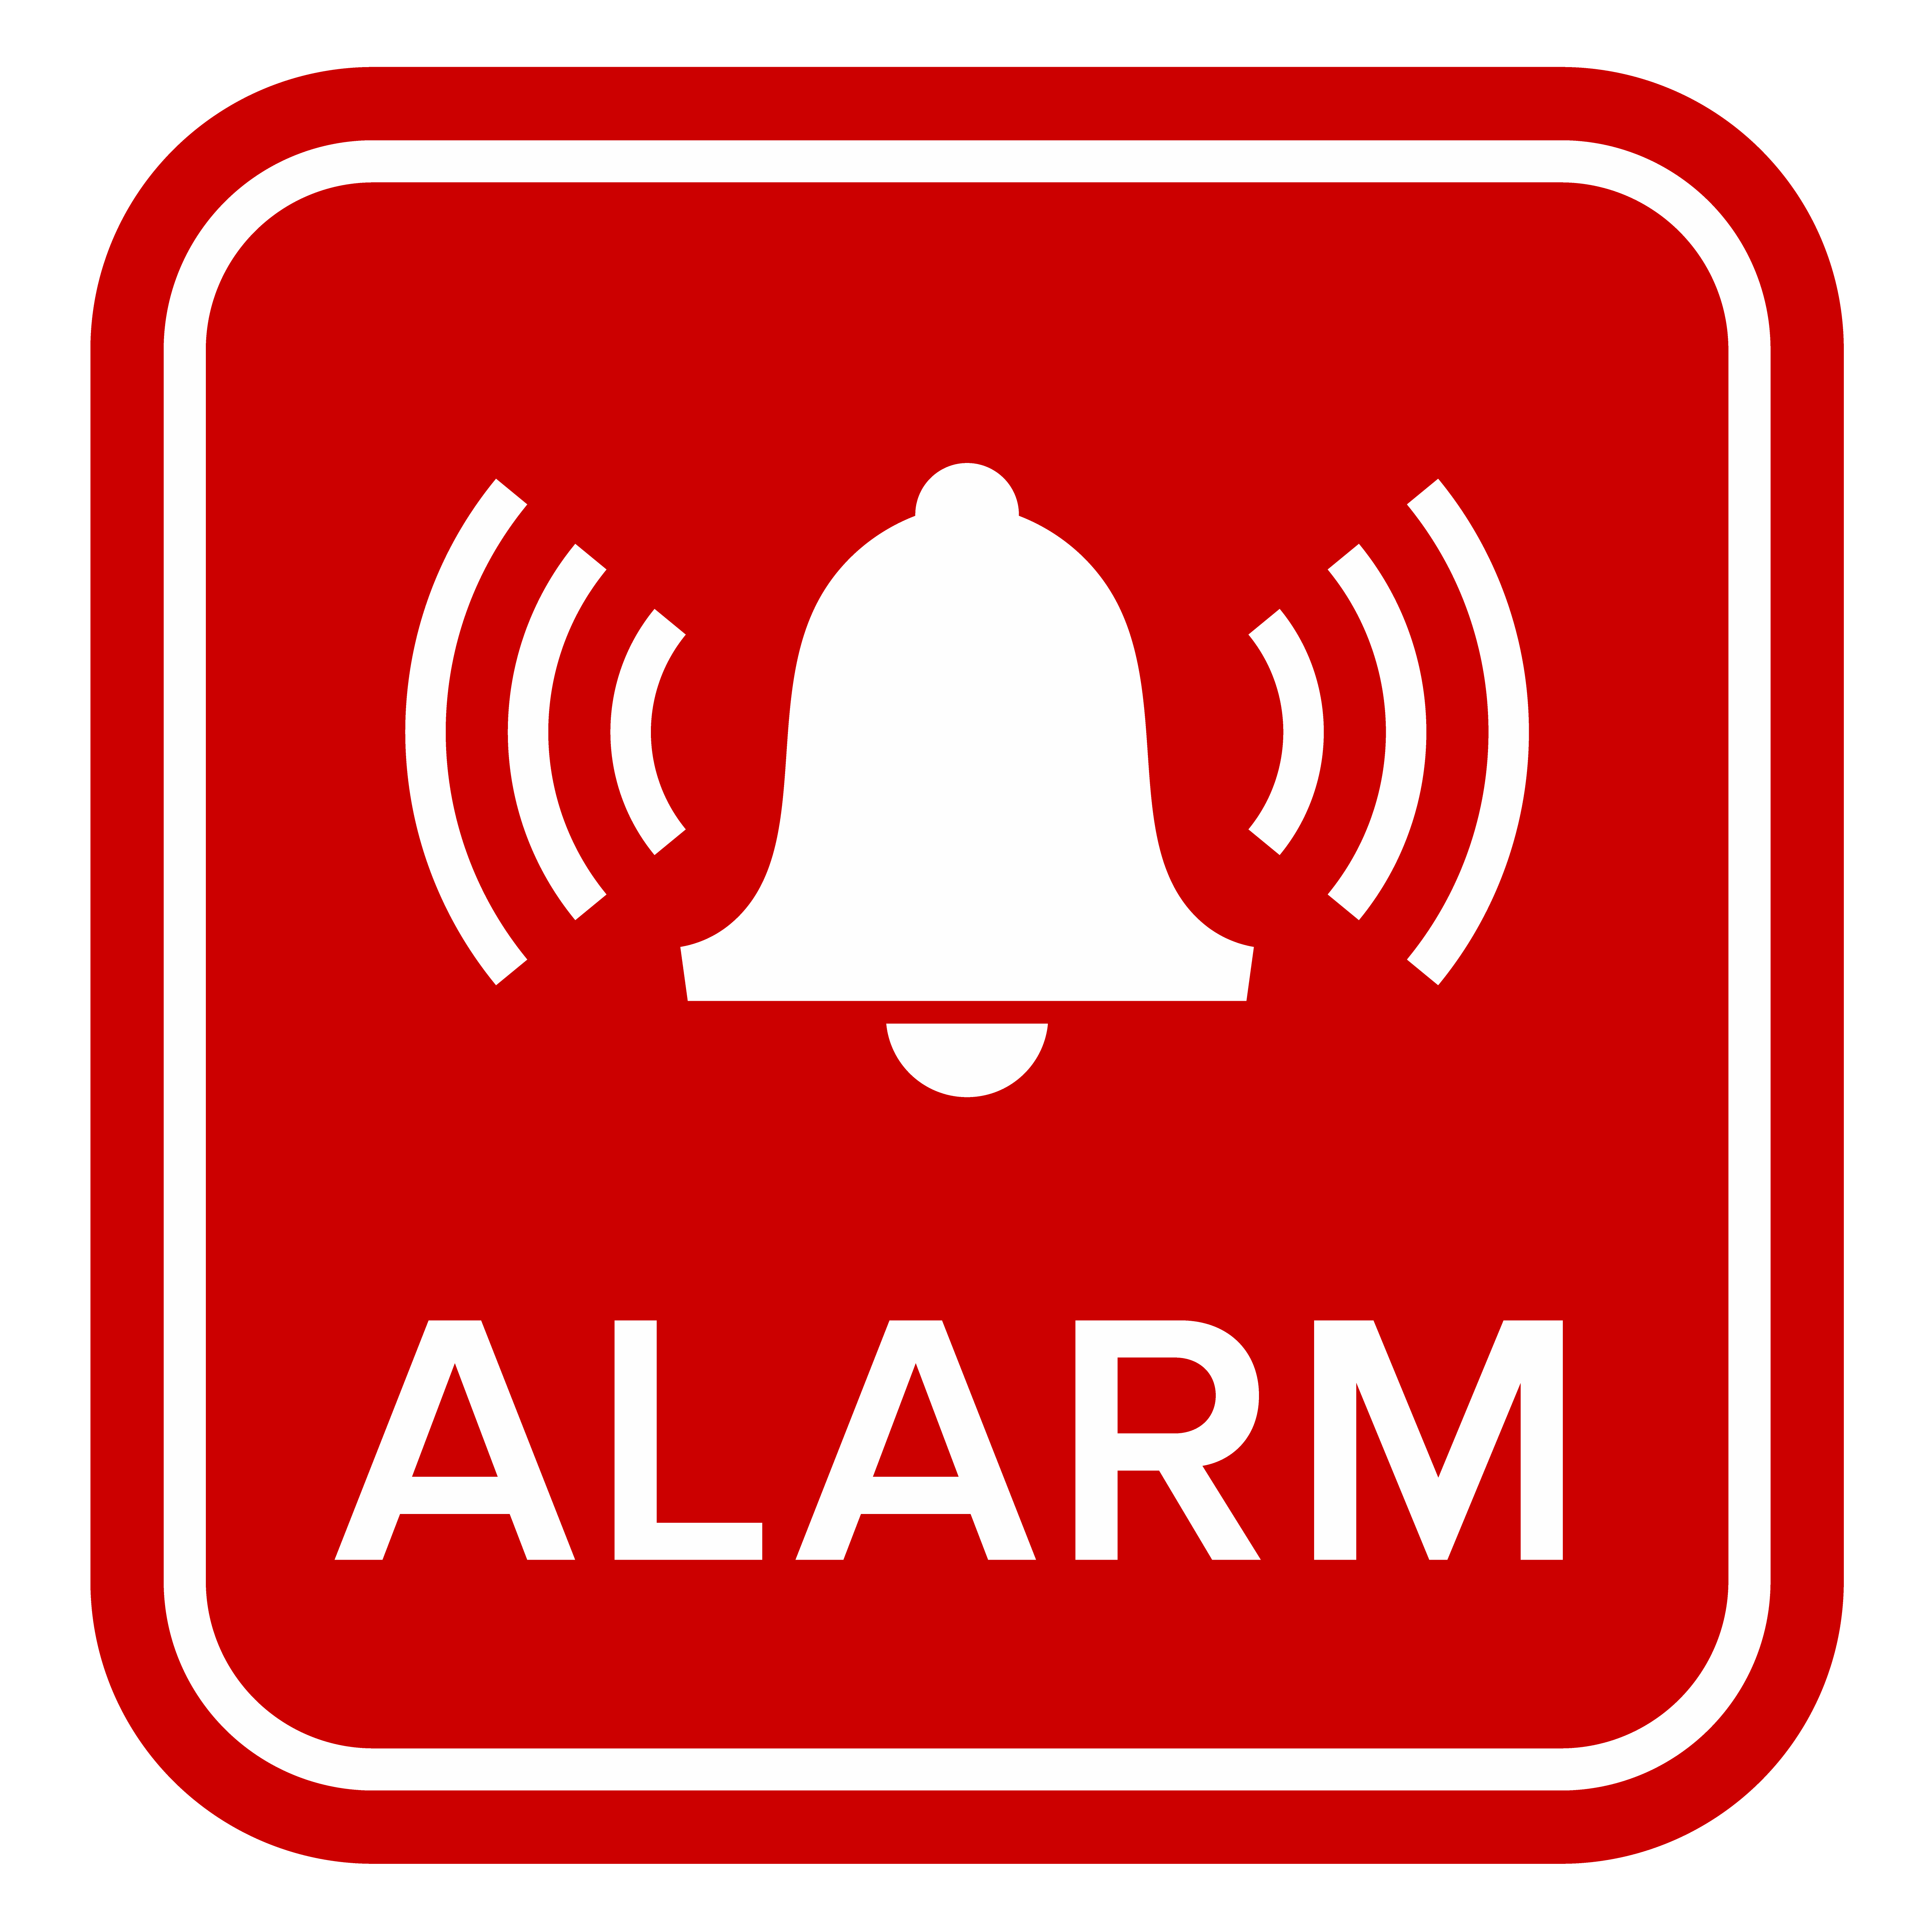 SS_fire alarm sign